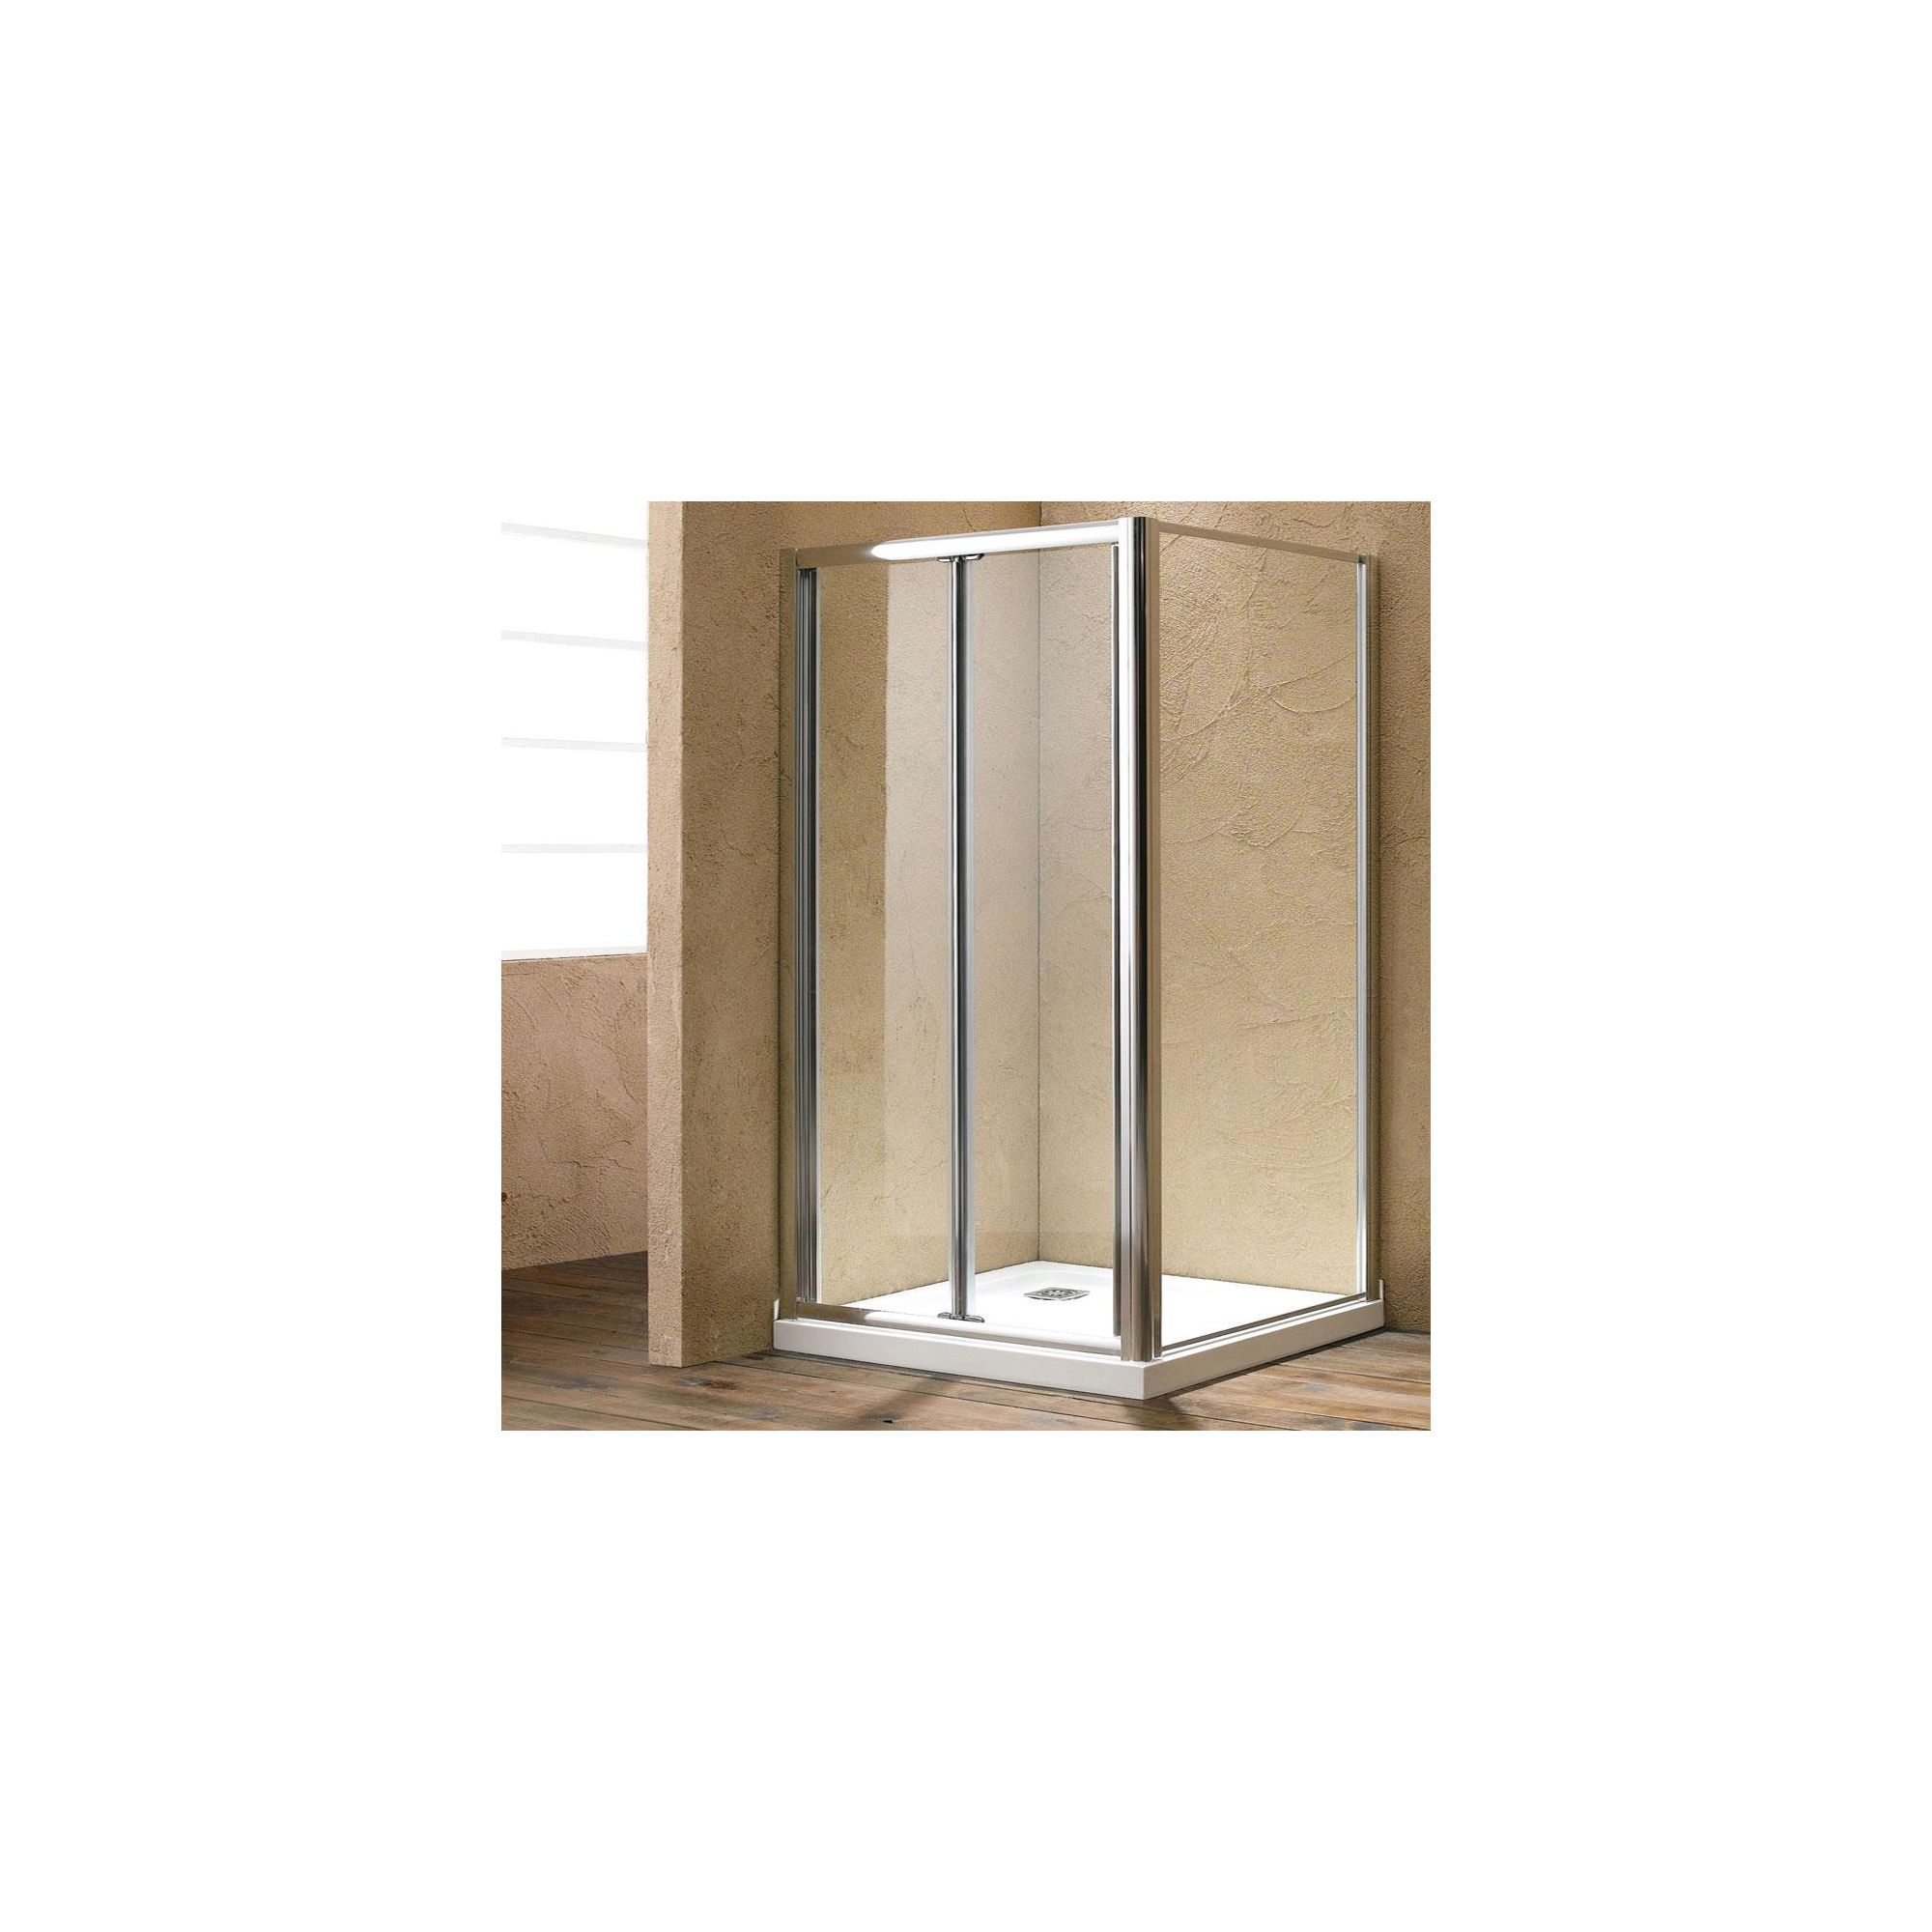 Duchy Style Twin Bi-Fold Door Shower Enclosure, 1100mm x 900mm, 6mm Glass, Low Profile Tray at Tesco Direct